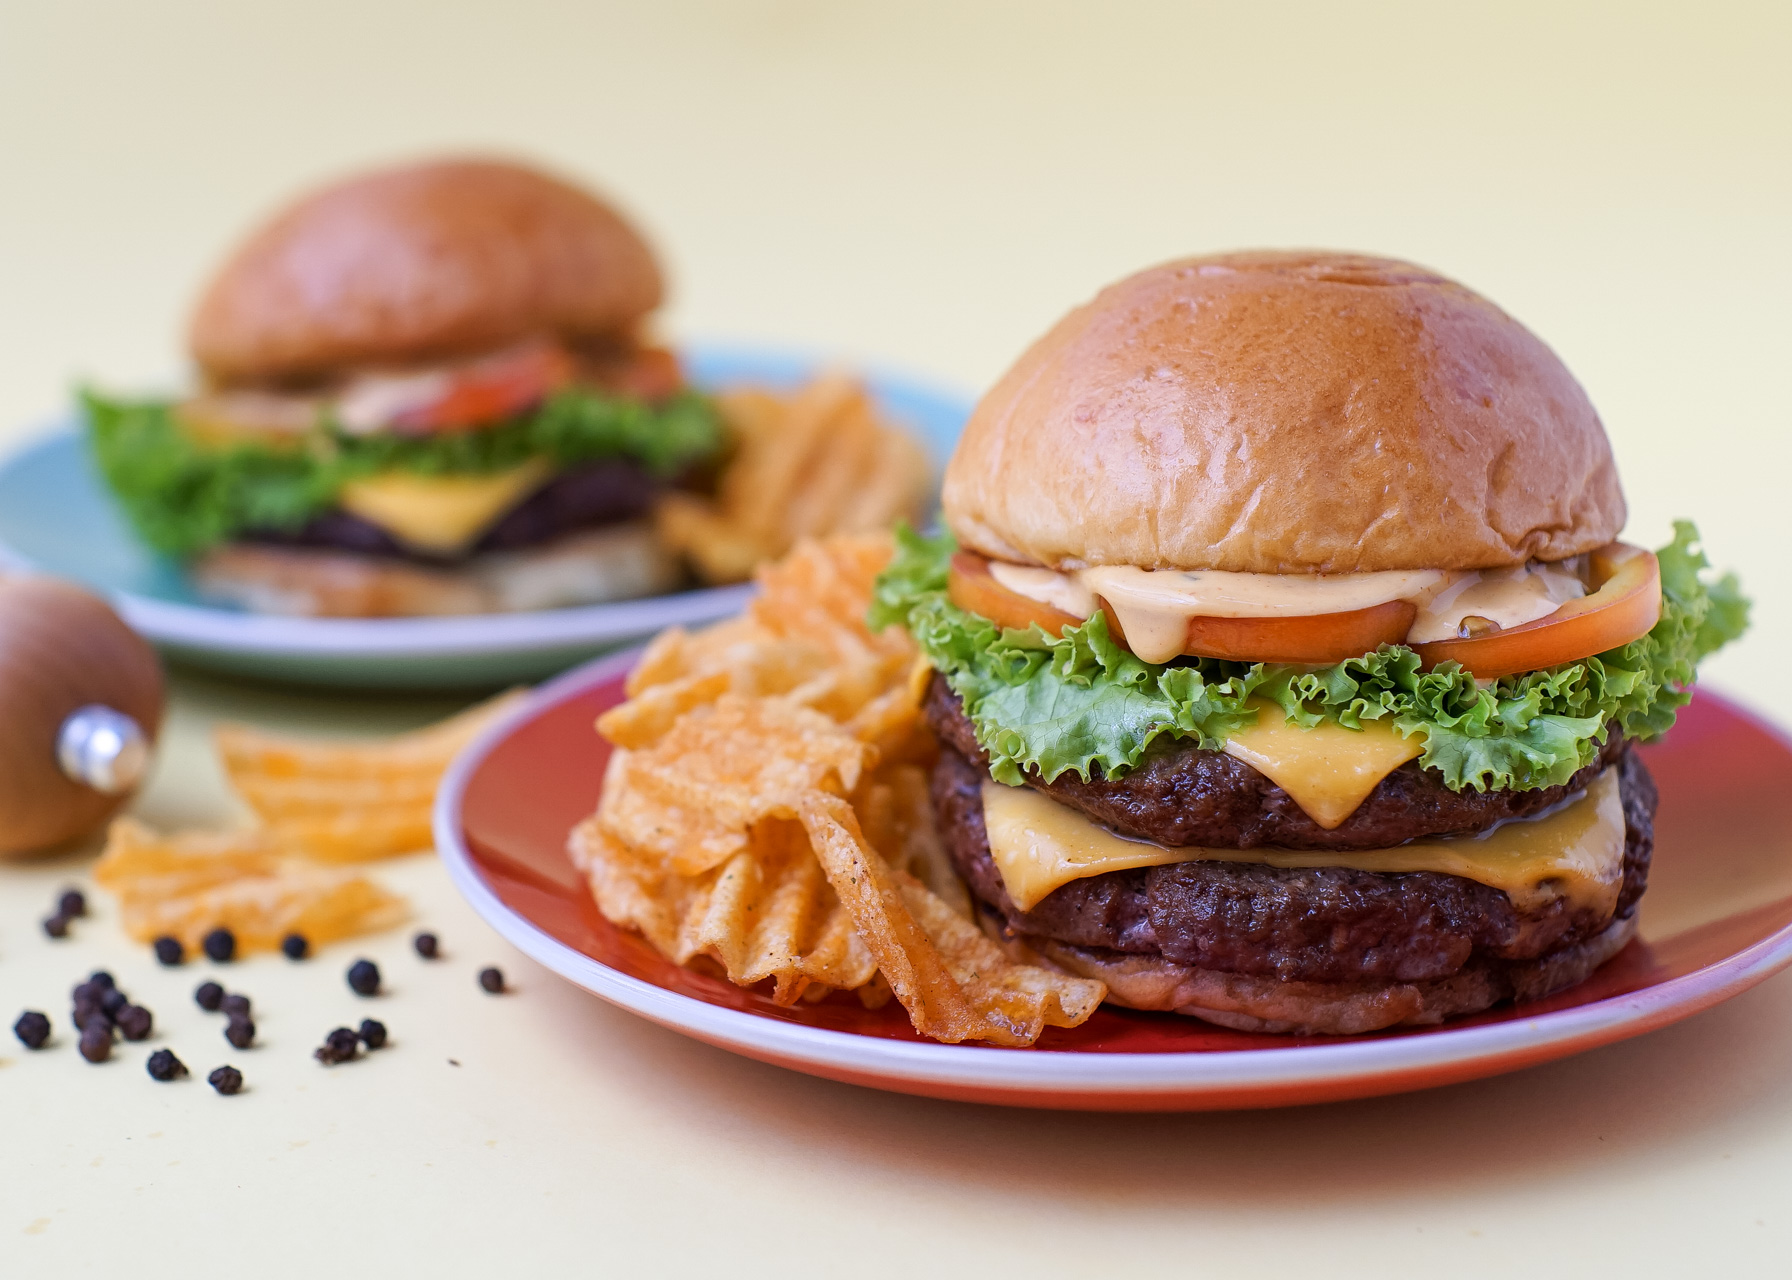 Make Your Own Juicy Burgers At Home With This Easy All-In-One Kit!